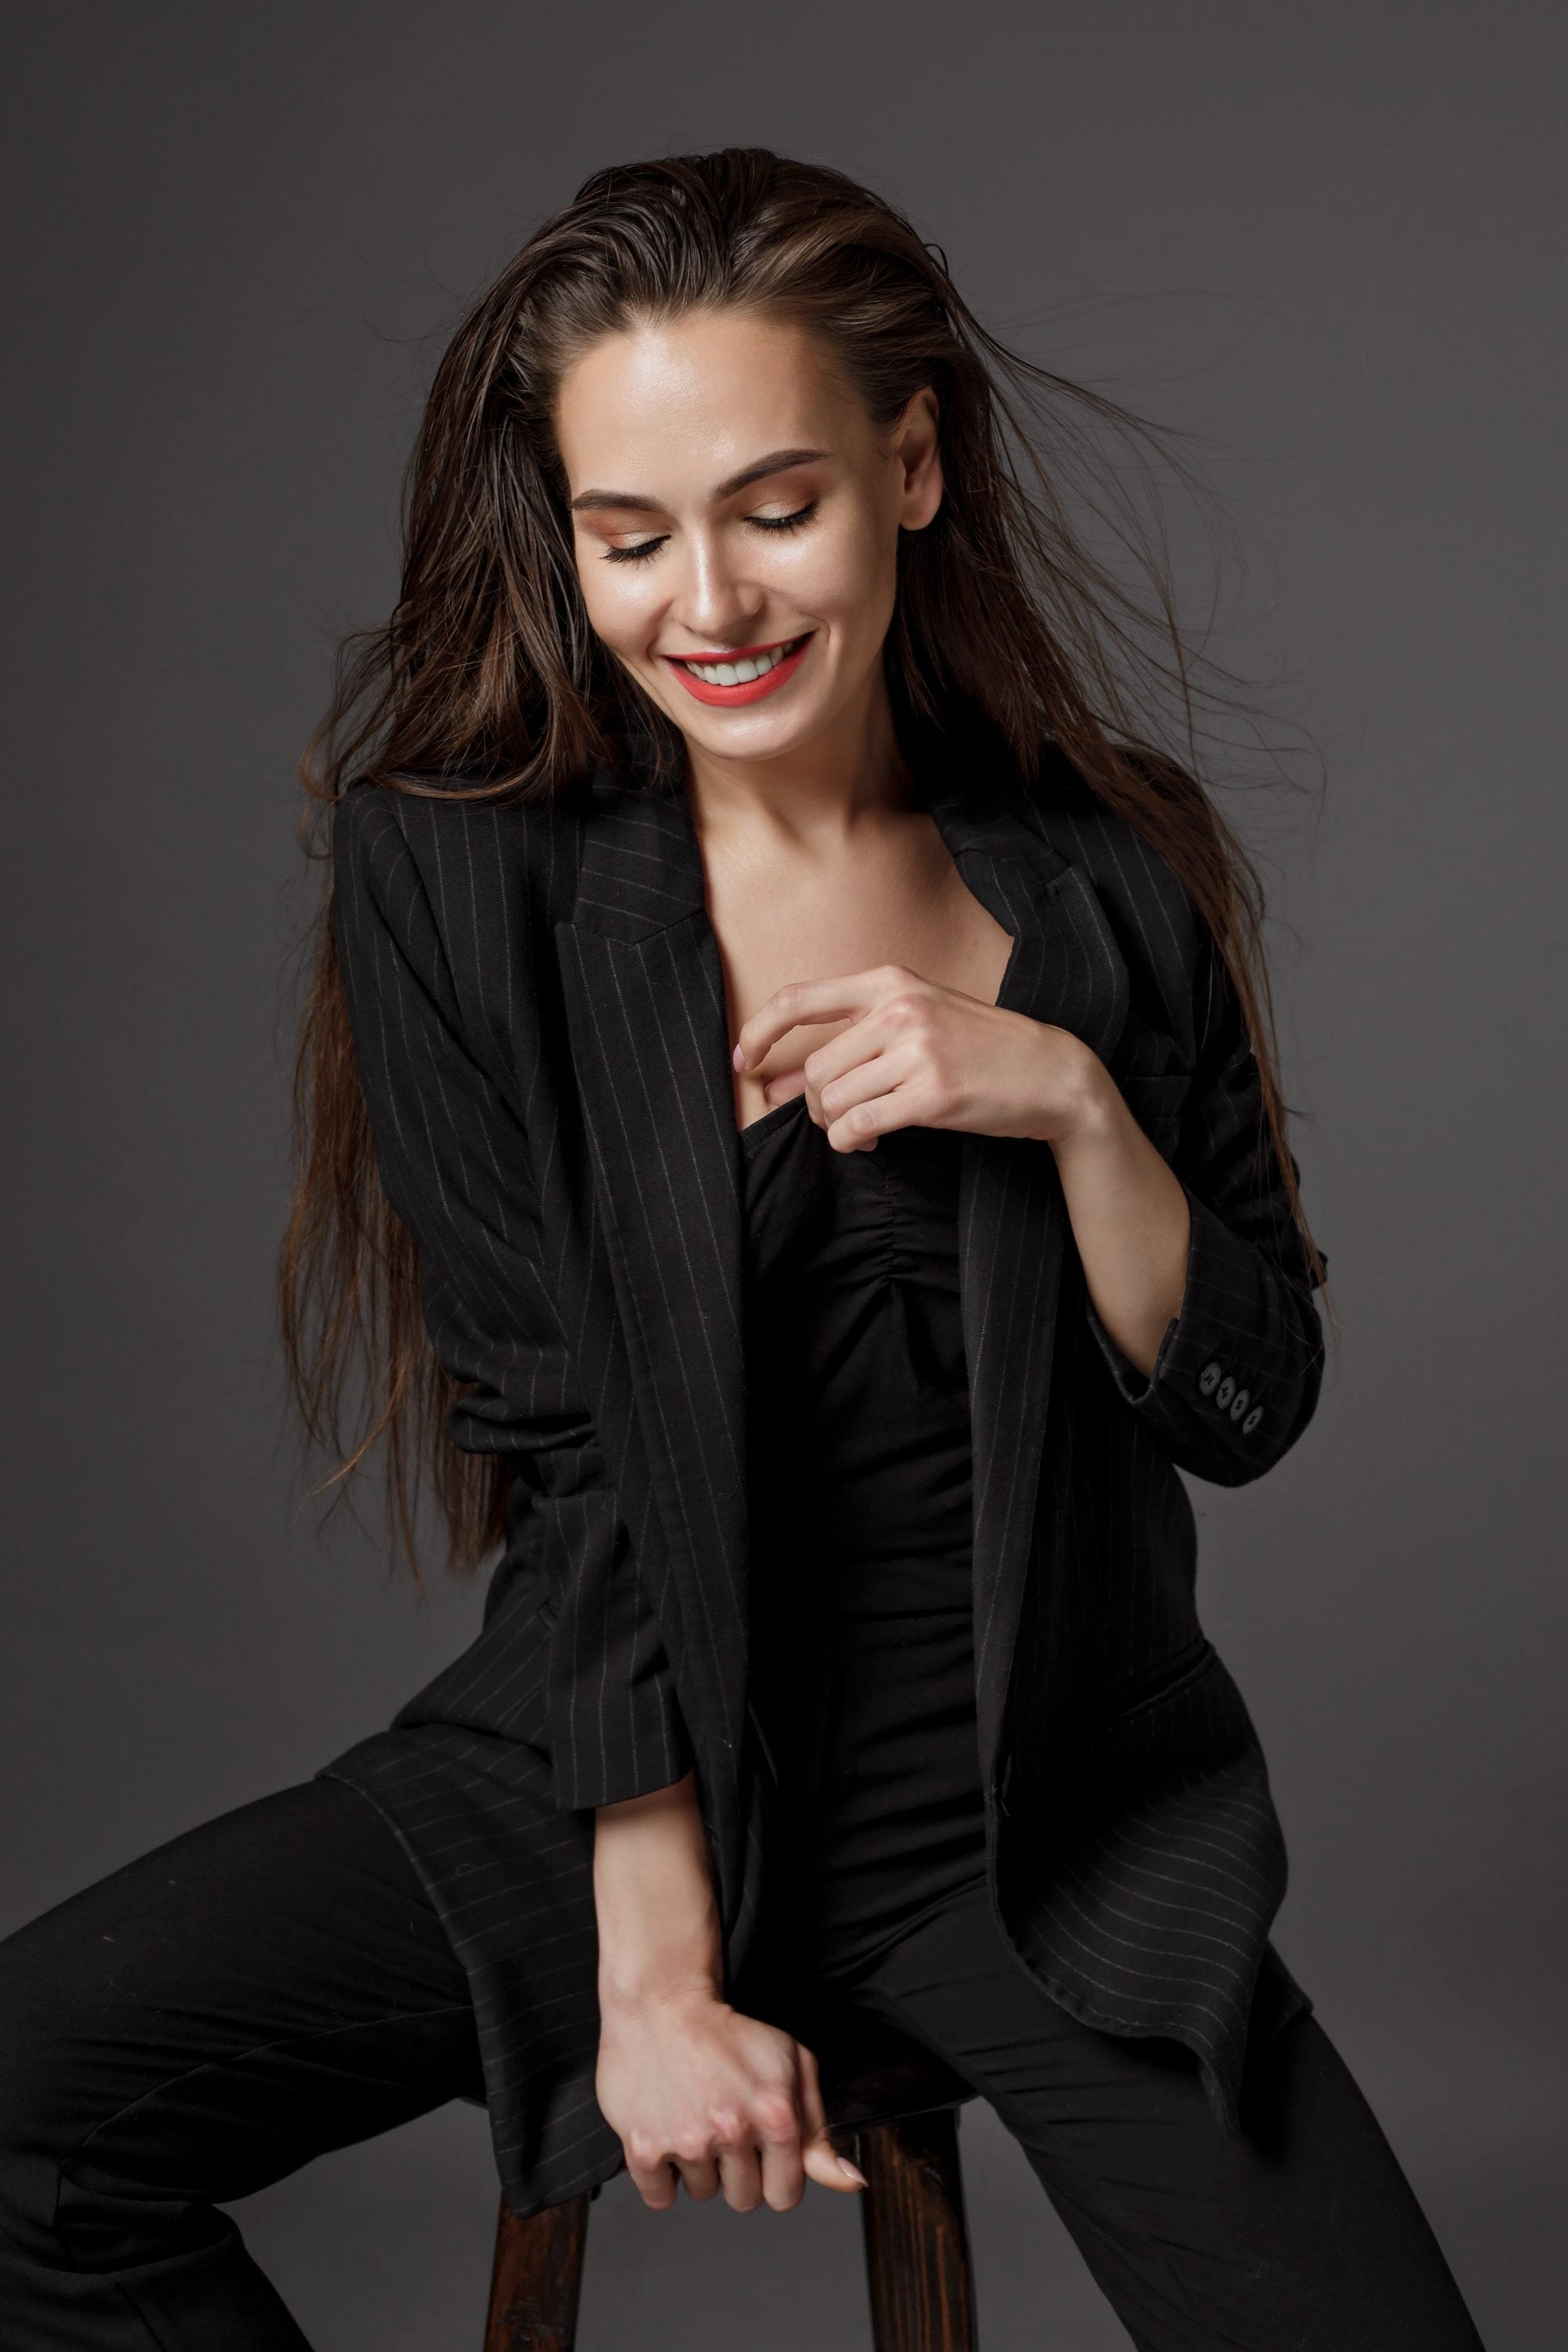 Wet hair look pegs: woman in a black pantsuit, sporting her tousled wet hair while sitting